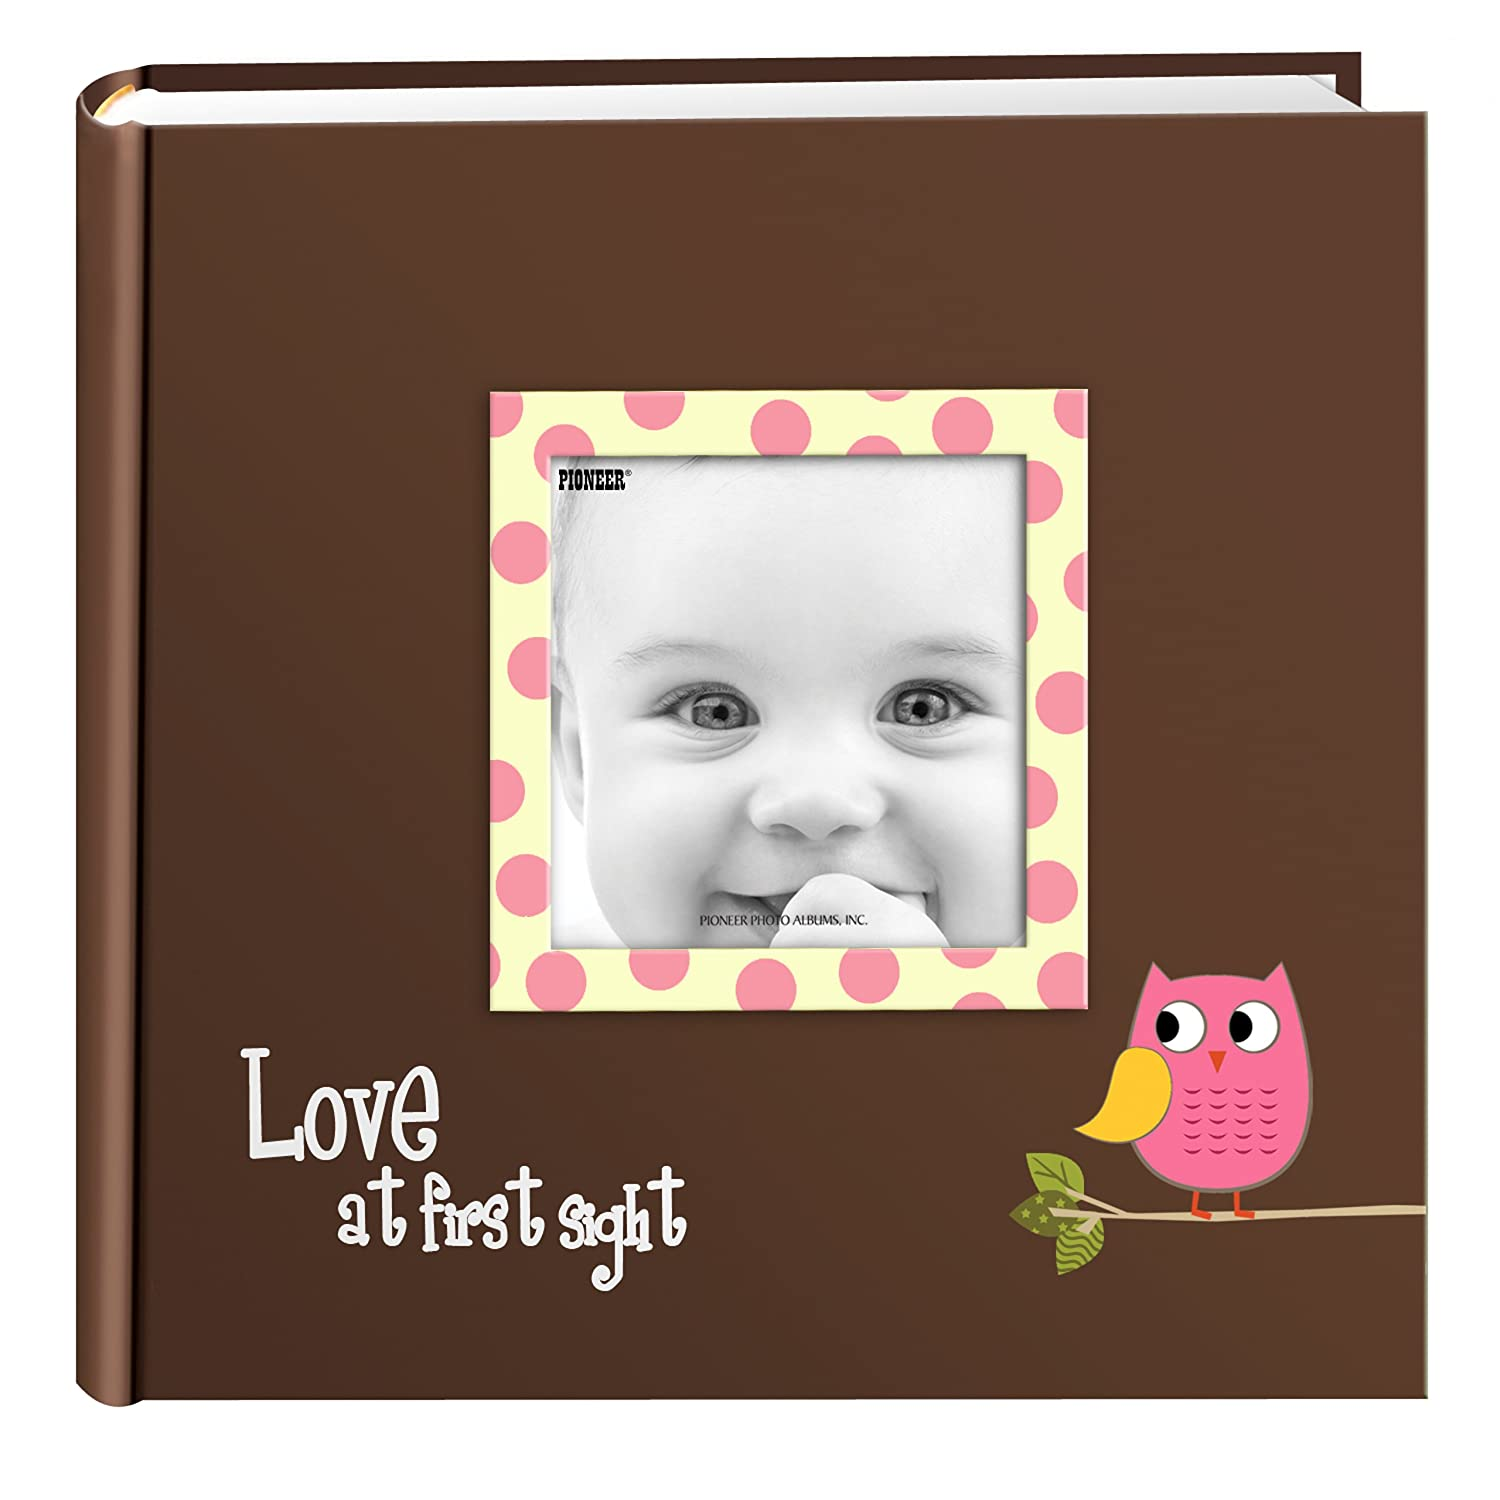 Pioneer Photo Albums EV-246FB/O Baby Owl Printed Designer Frame Cover Photo Album, 200-Pocket, Pink Inc EV-246FB/OP